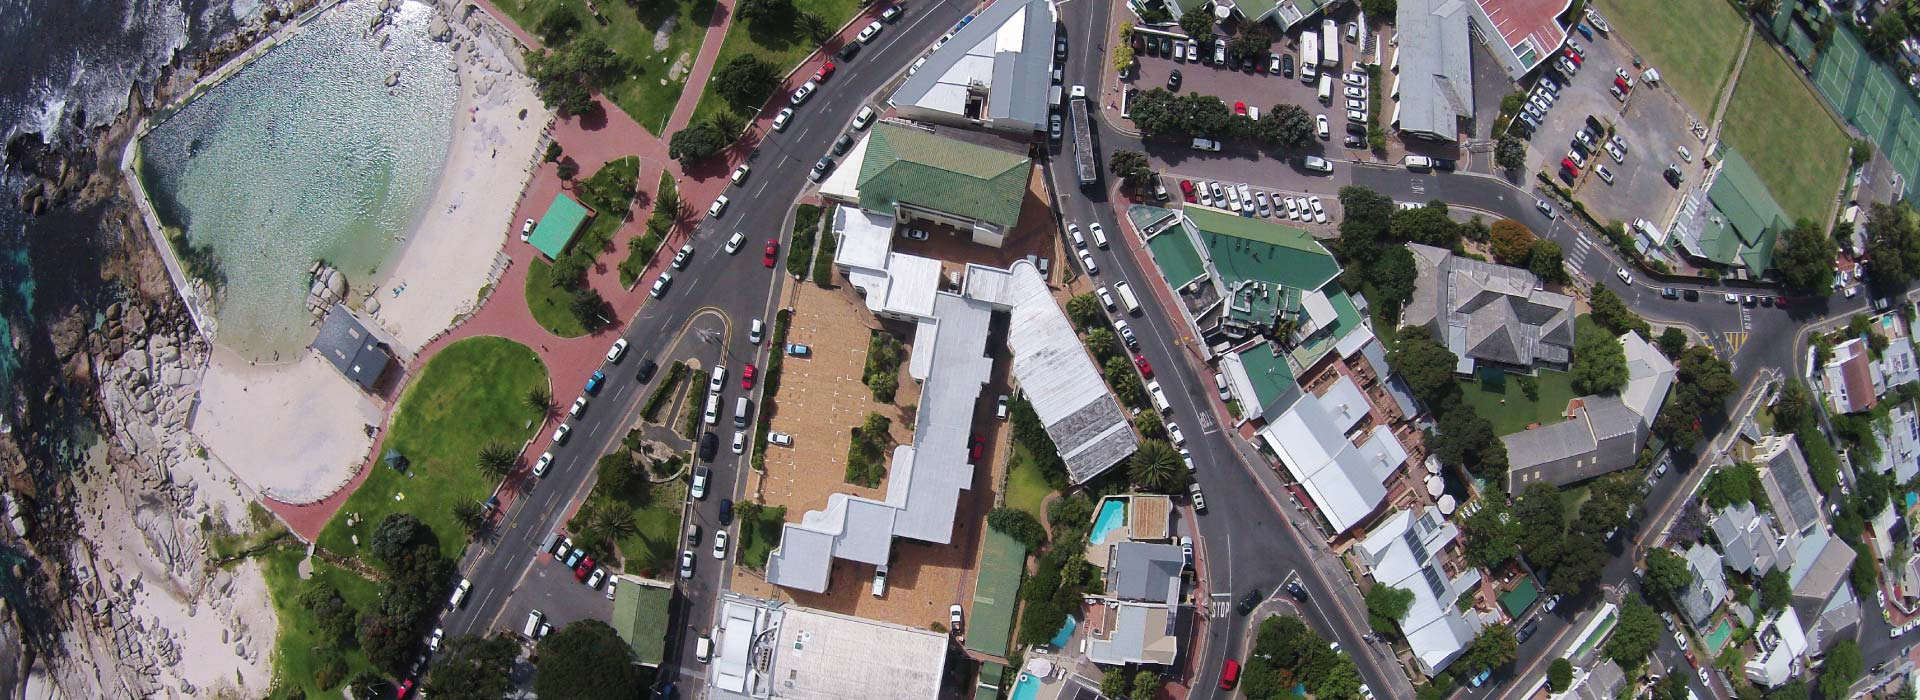 Camps Bay Village - Aerial View